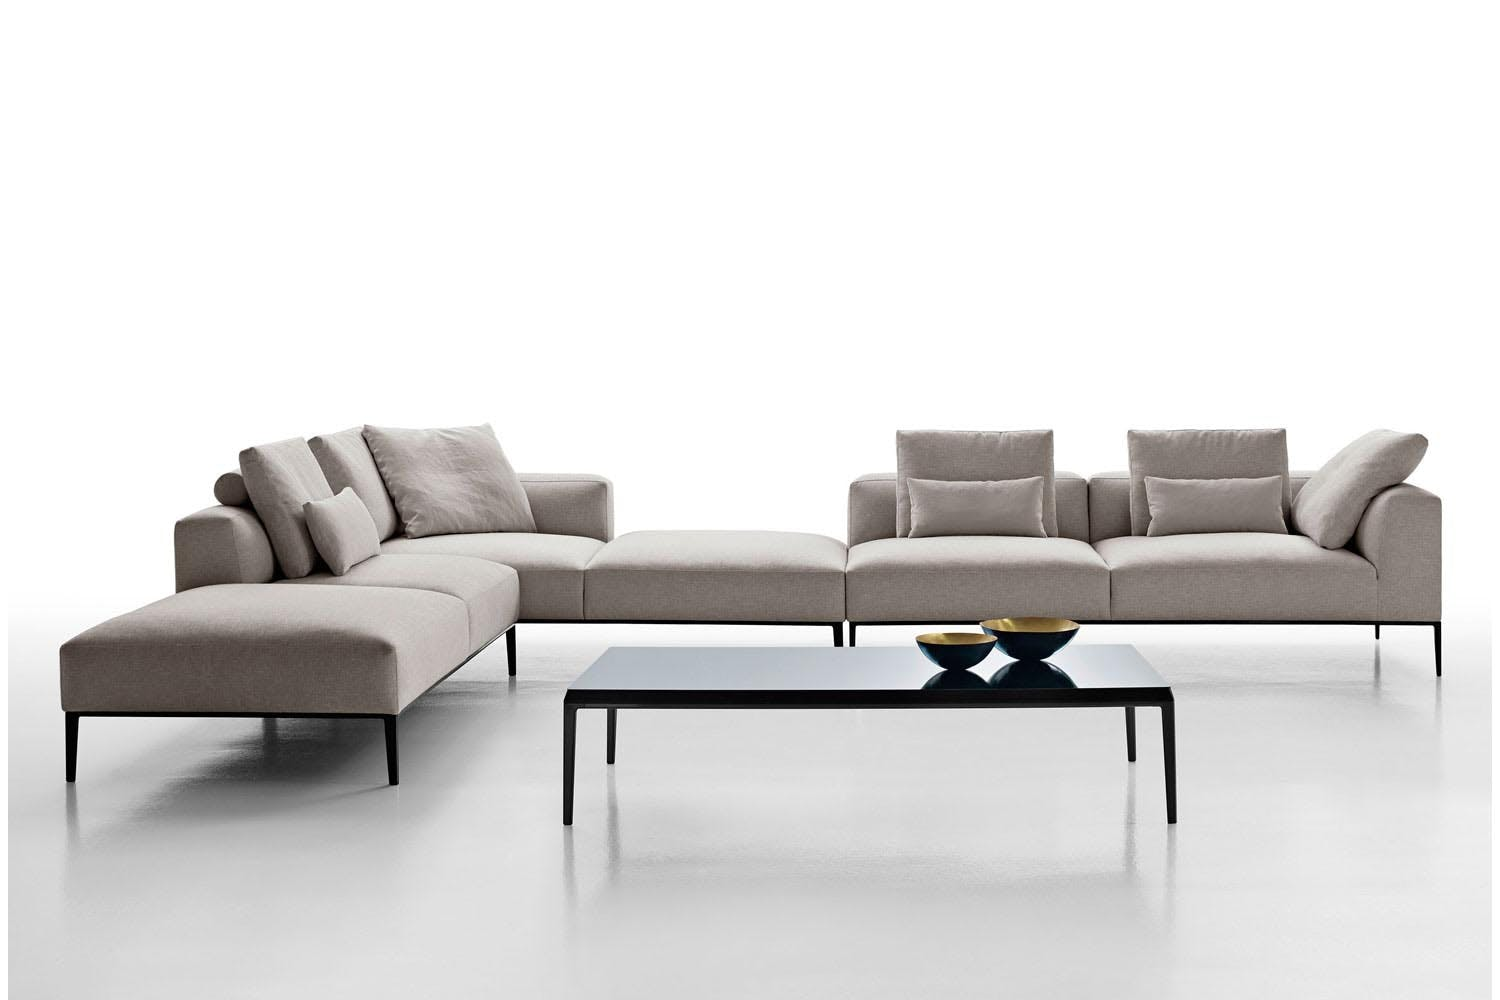 michel effe sofa by antonio citterio for b b italia space furniture. Black Bedroom Furniture Sets. Home Design Ideas